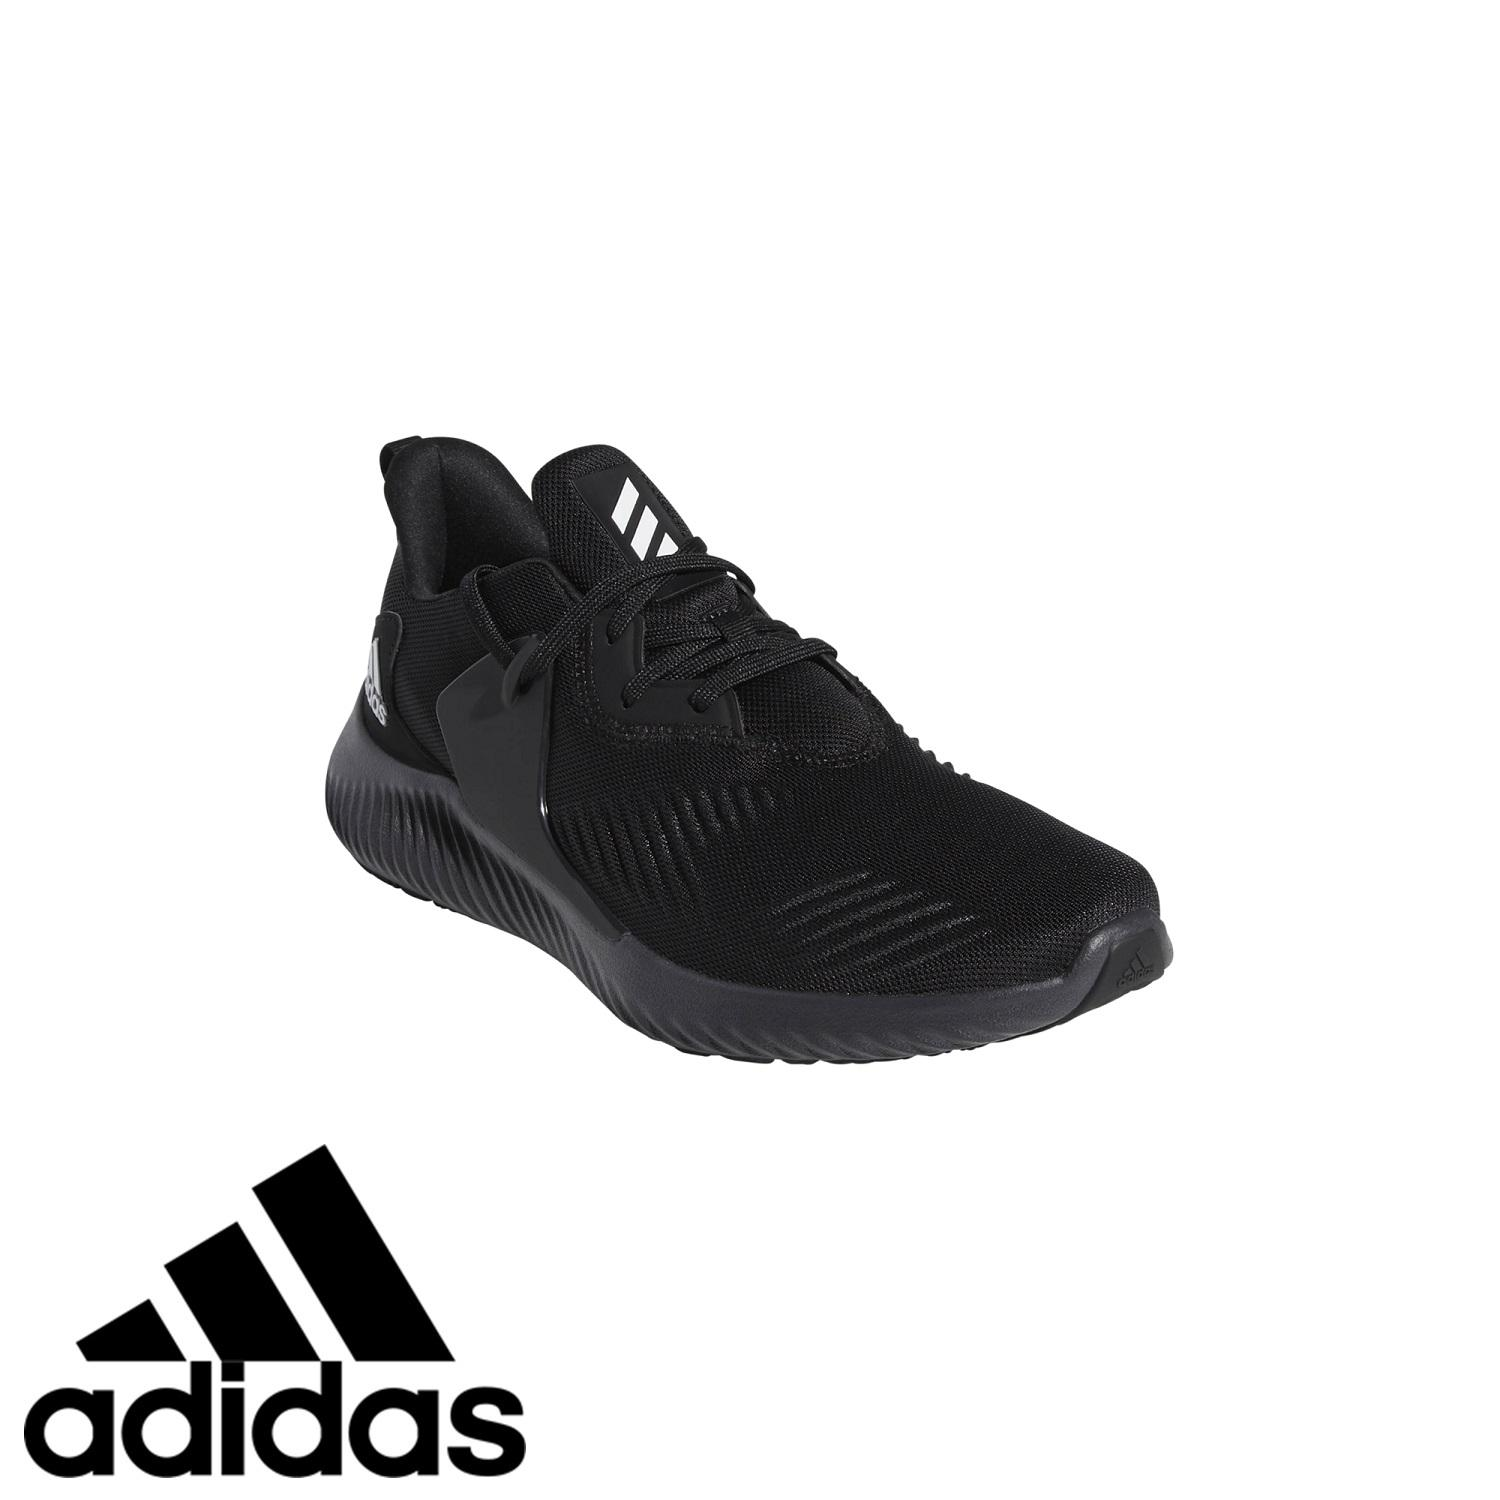 14f552d76f5eb Adidas Sports Shoes Philippines - Adidas Sports Clothing for sale ...